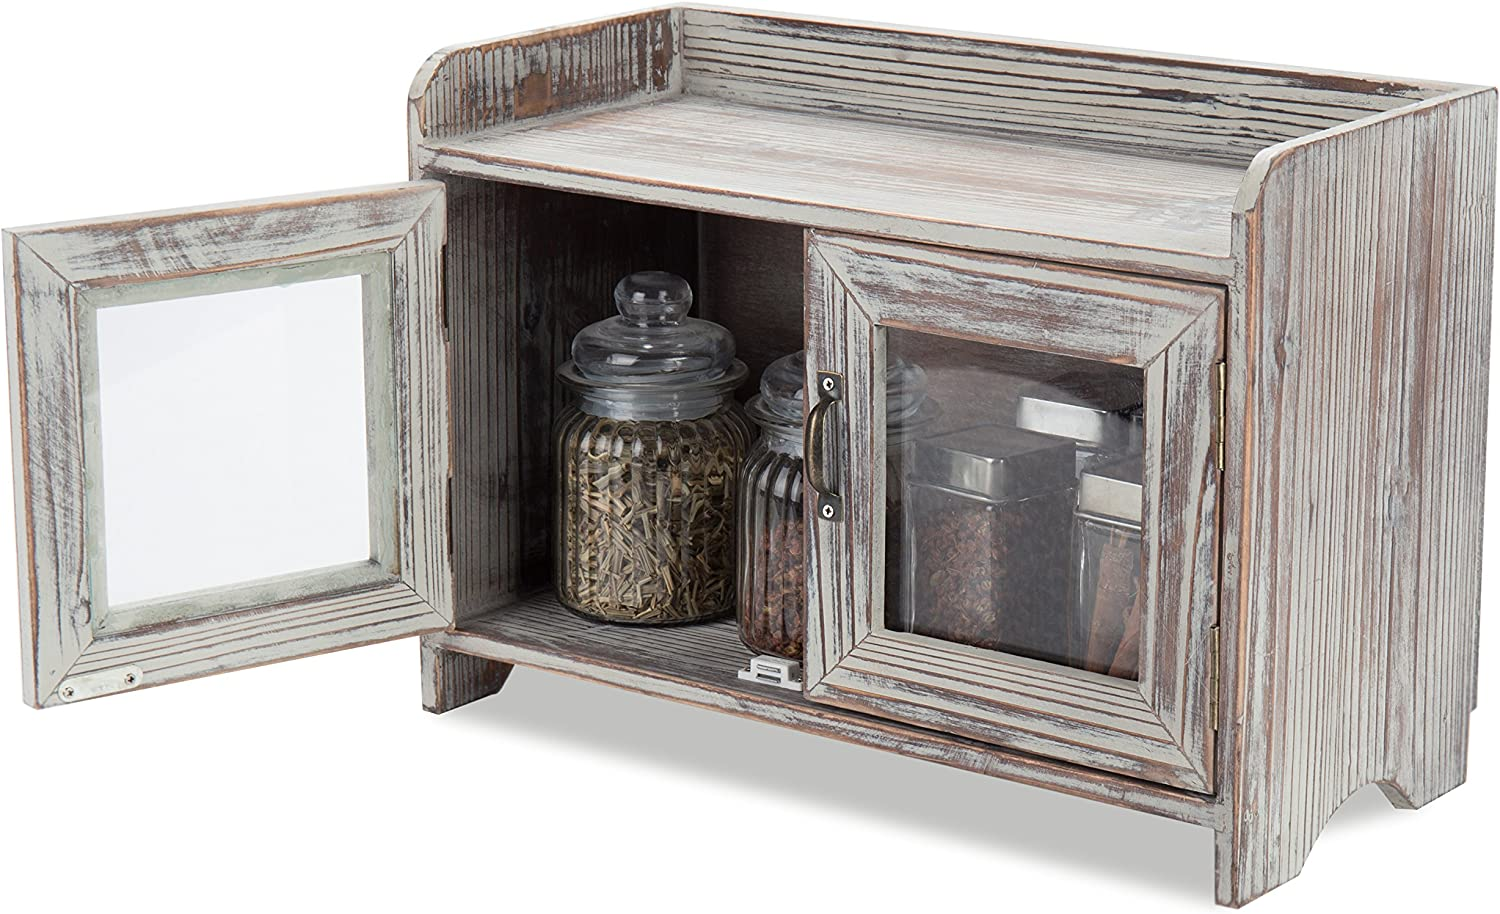 Amazon Com Mygift Rustic Wood Kitchen Bathroom Countertop Cabinet W Glass Windows Kitchen Dining